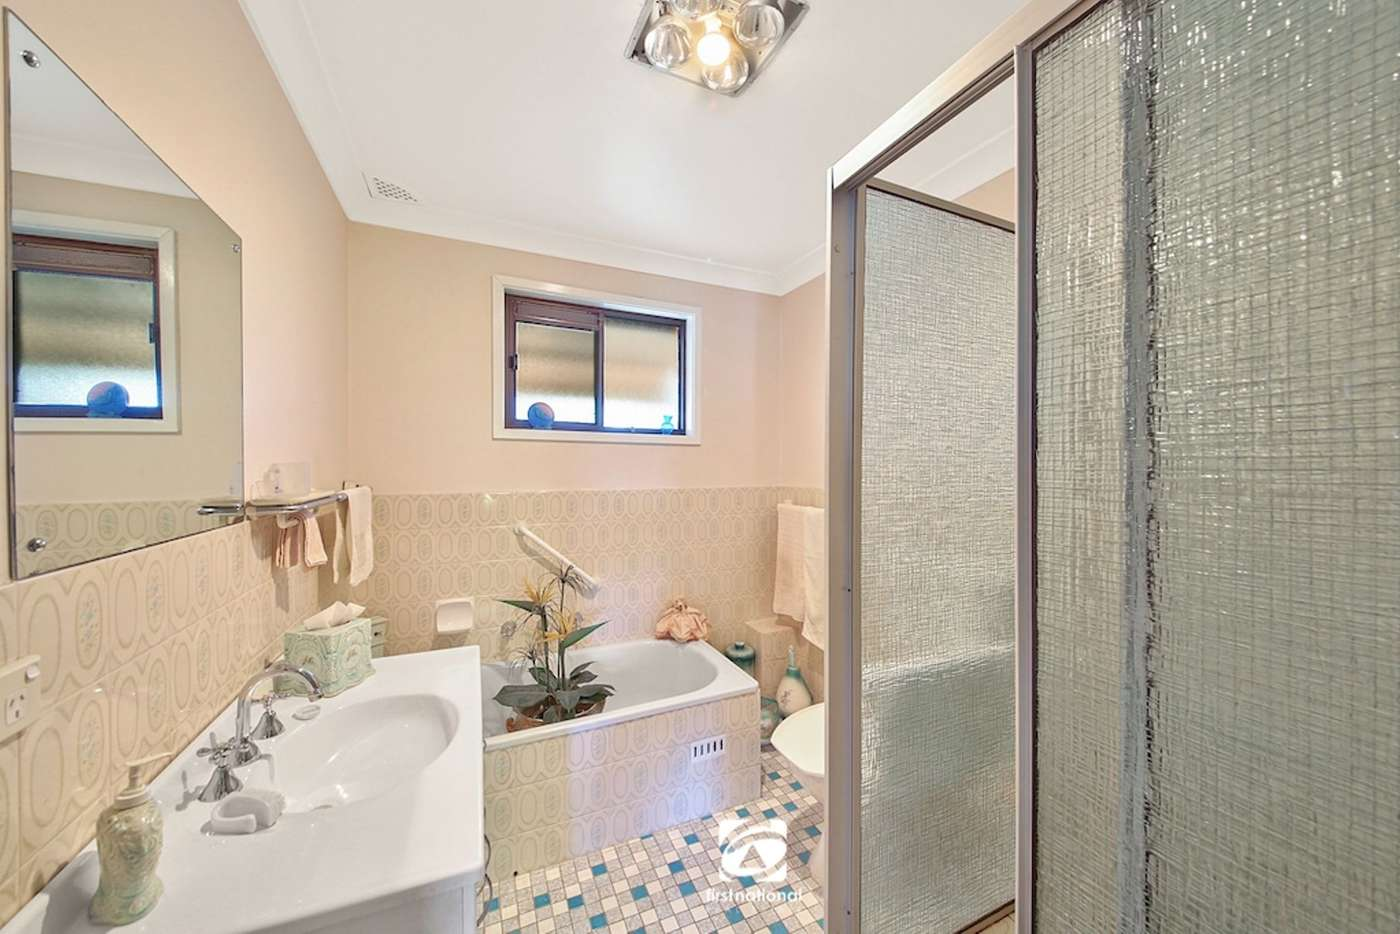 Seventh view of Homely unit listing, 2/32 Broughton Street, Campbelltown NSW 2560